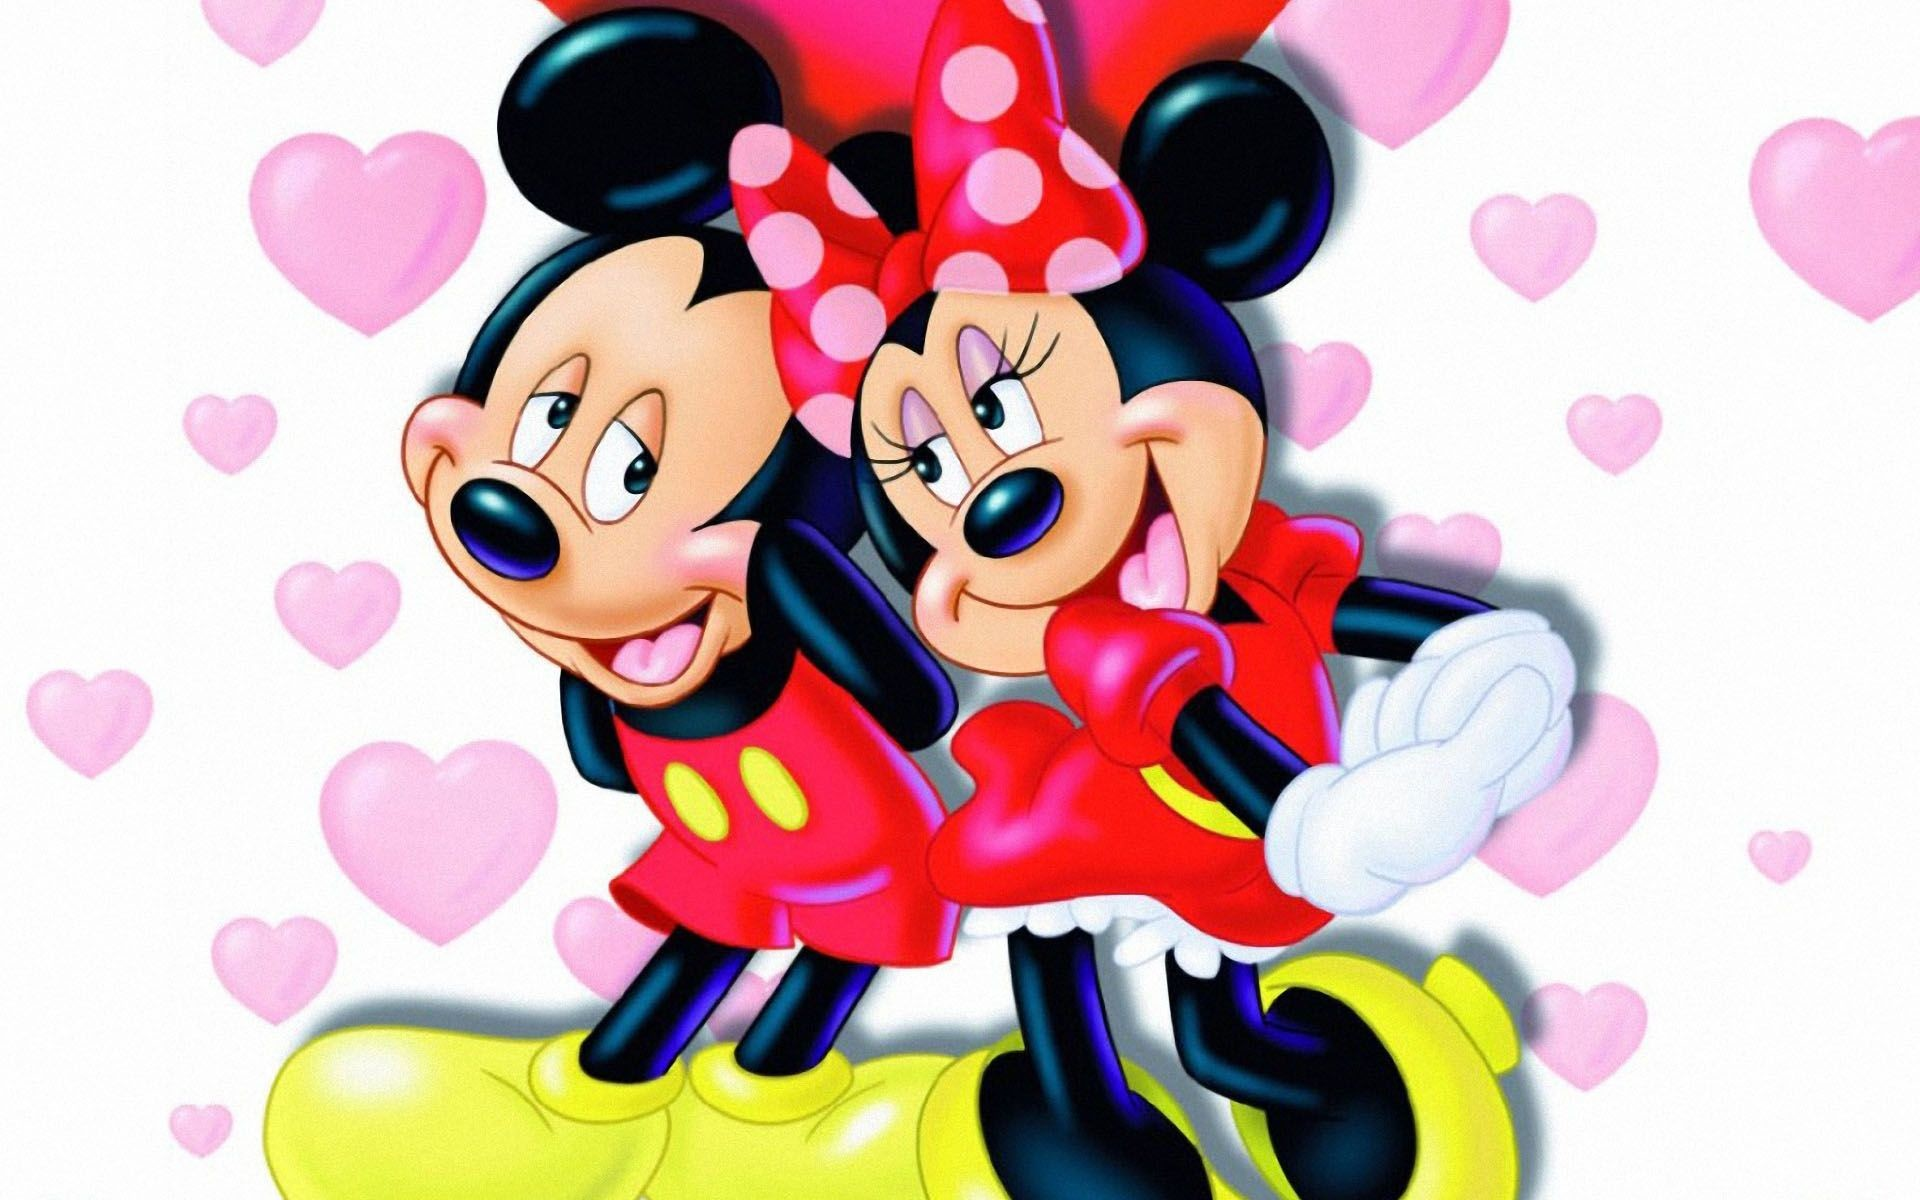 1920x1200 valentines mickey mouse pic